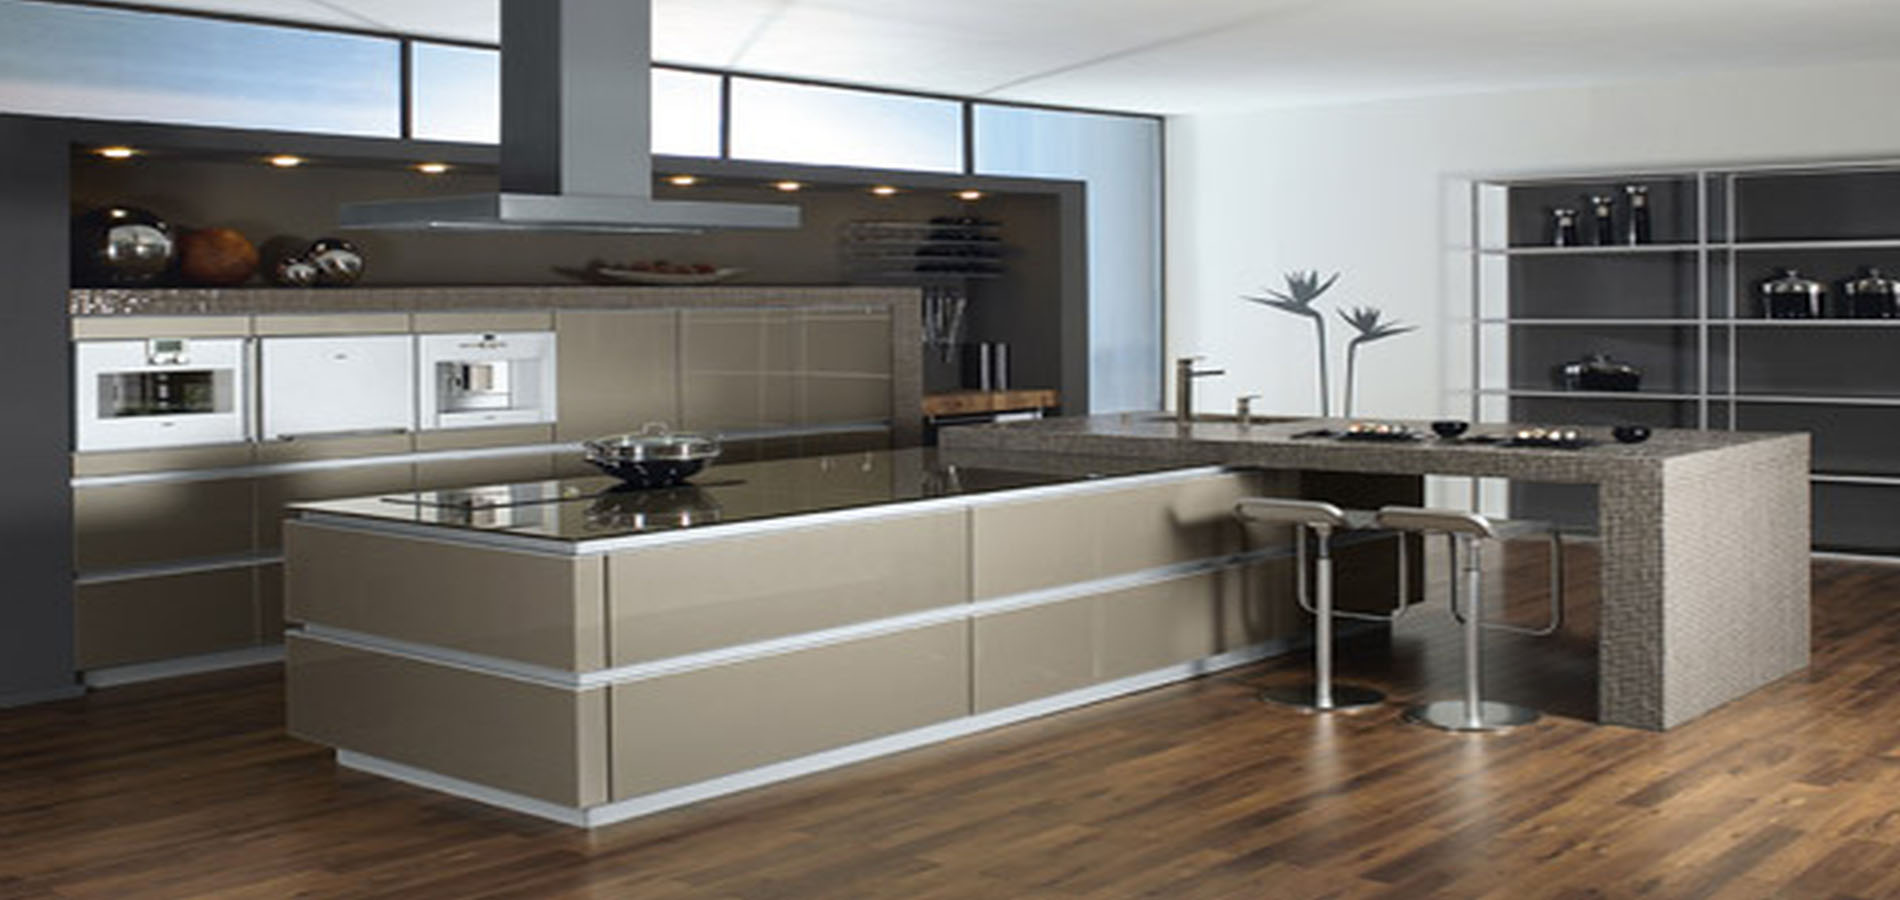 Cheap kitchen cabinet malaysia great design functional for Affordable furniture malaysia